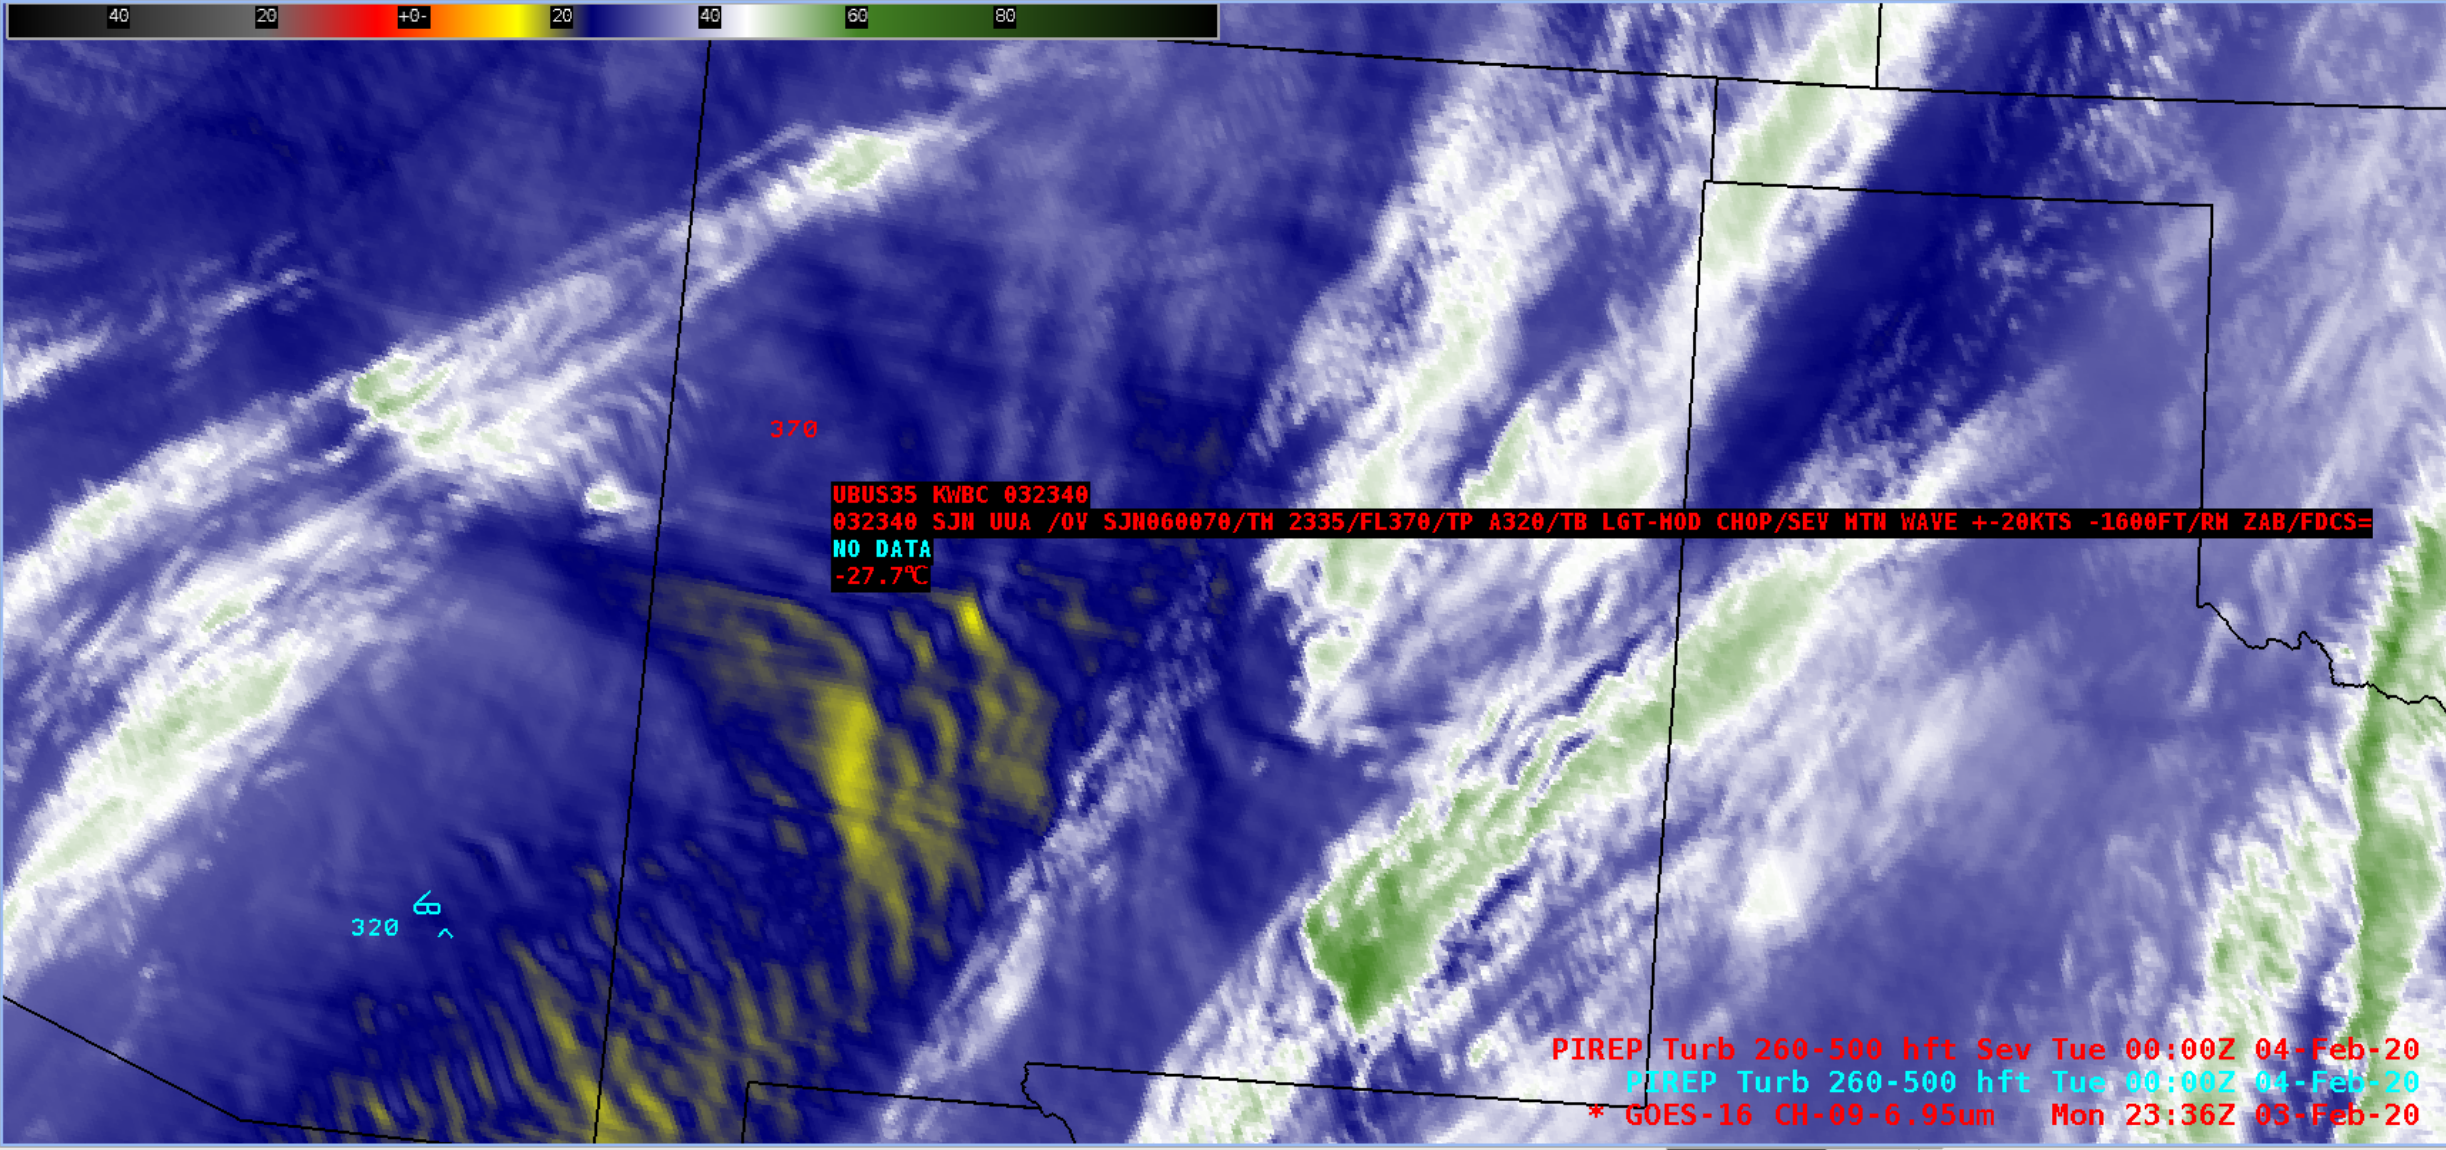 GOES-16 Mid-level Water Vapor (6.9 µm) image, with pilot report of severe turbulence at 39,000 feet [click to enlarge]